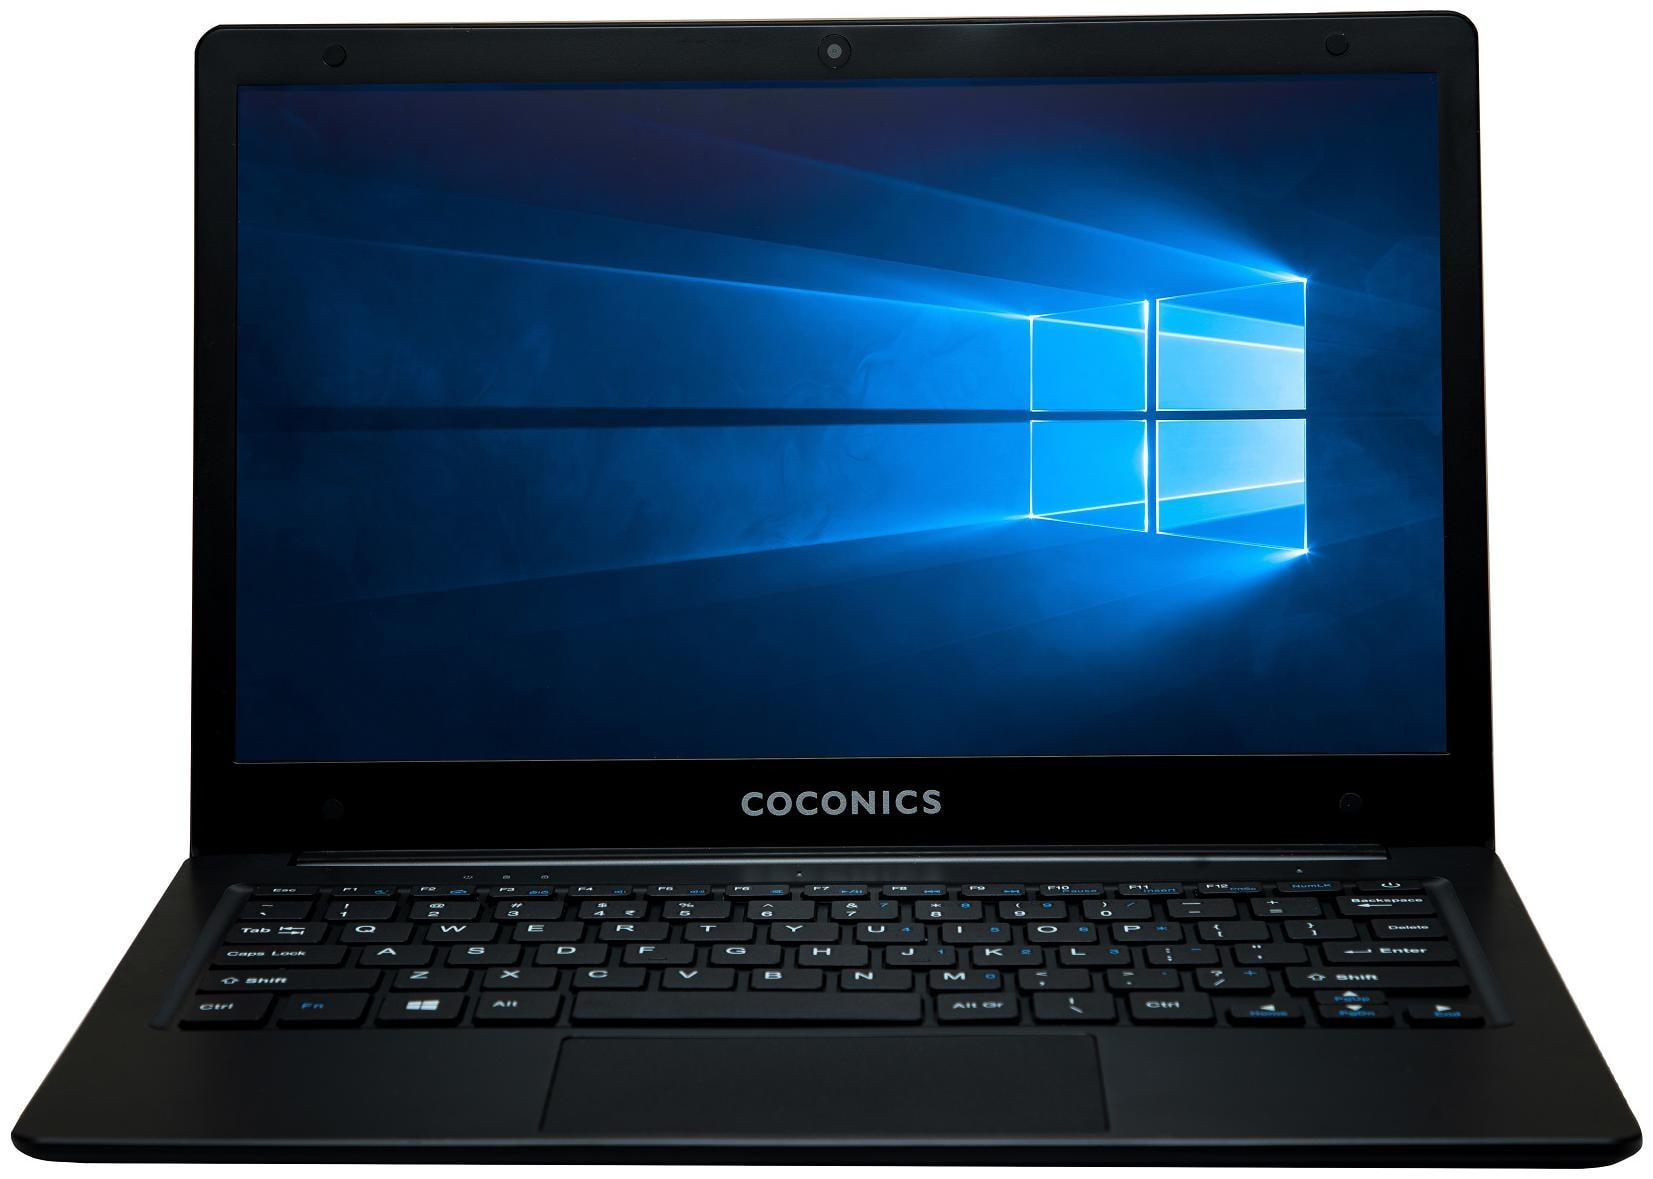 Coconics Enabler Laptop  Intel Celeron N4000/4  GB LPDDR4 RAM/64  GB eMMC/29.46 cm  11.6 inch /FHD/Windows 10 Professional/Intel Integrated   Black, 0.9